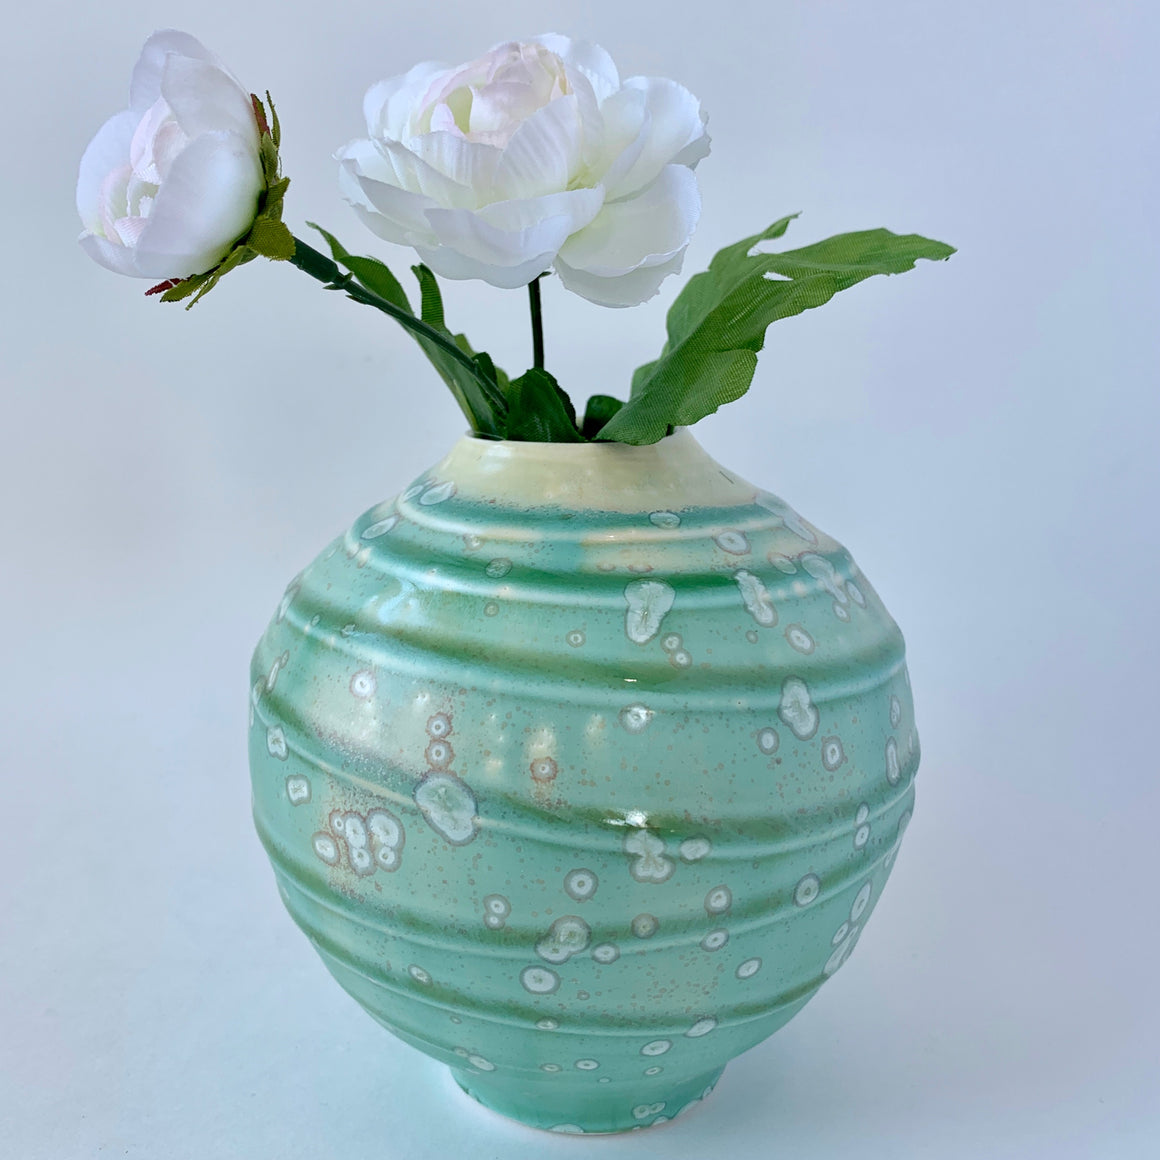 Crystalline Vase - Surfside Ceramics